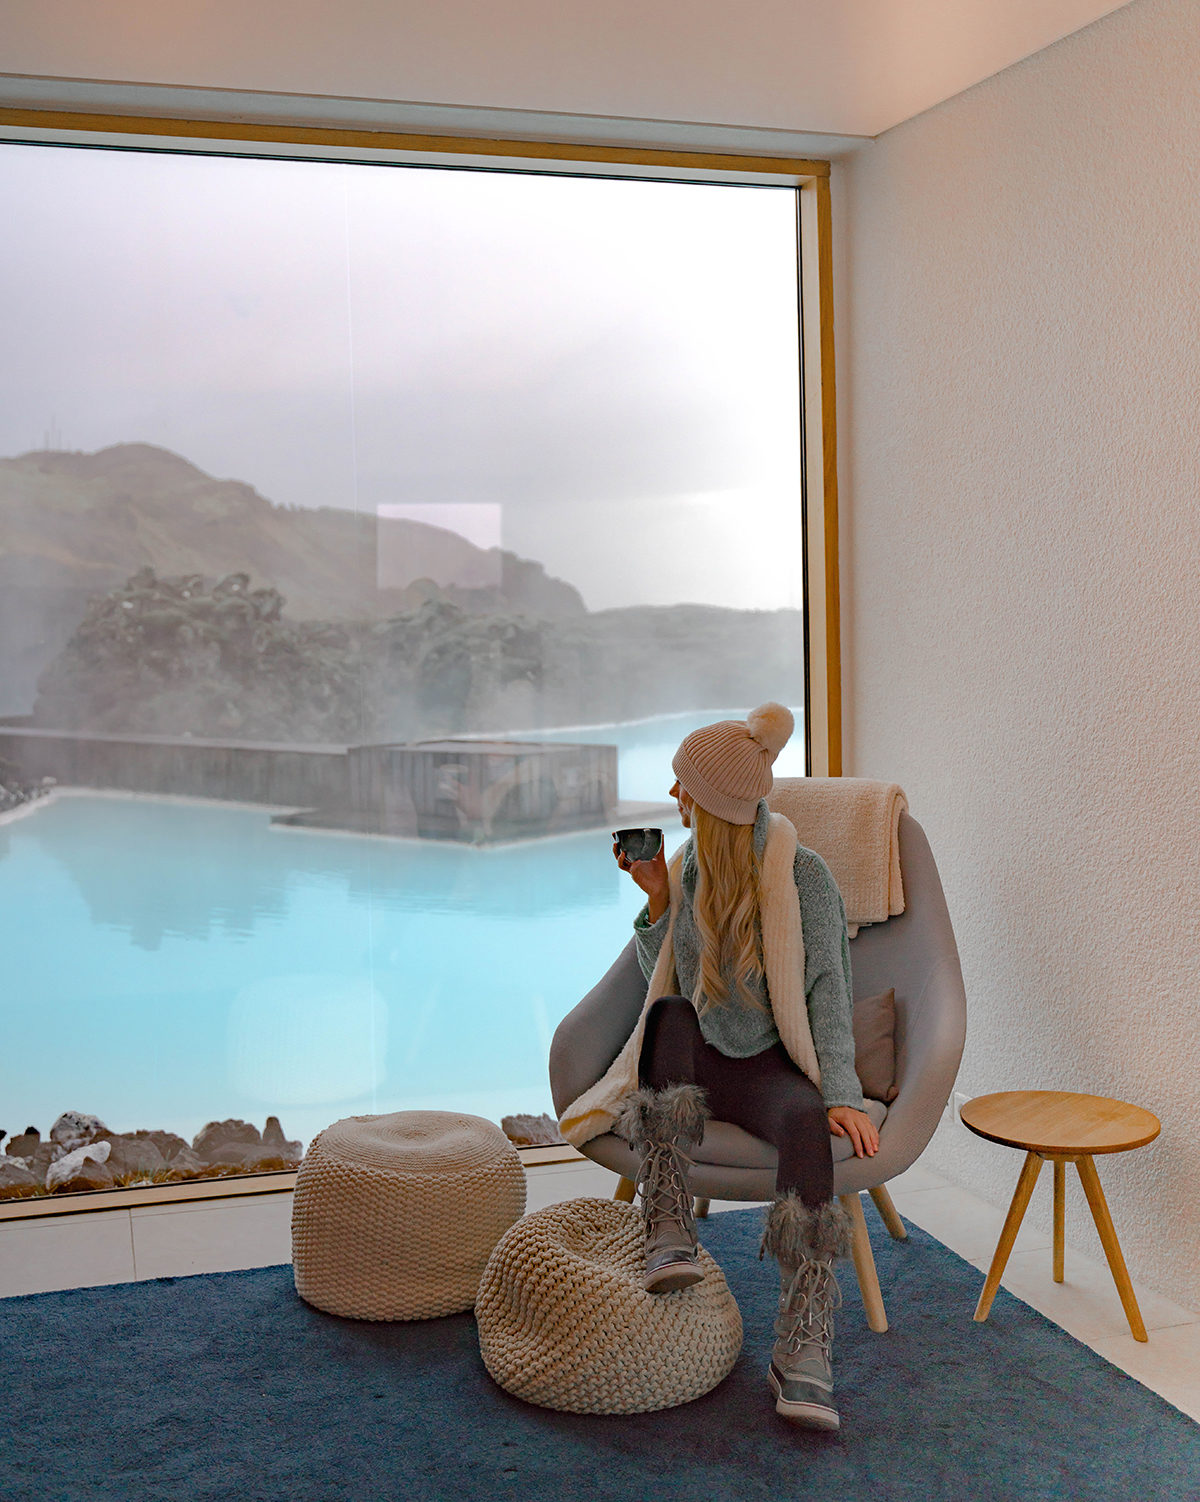 Blue Lagoon Iceland Travel Guide